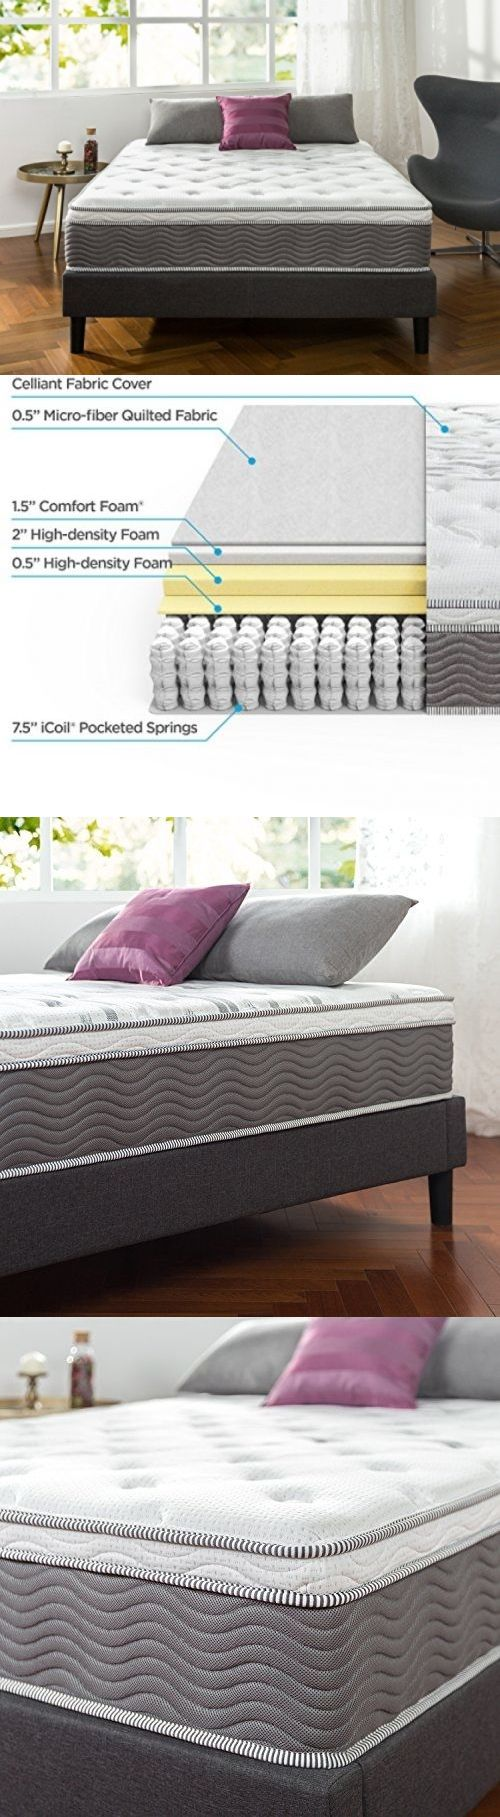 Mattresses 131588: Zinus 12 Inch Performance Plus Extra Firm Spring Mattress,  Twin ->